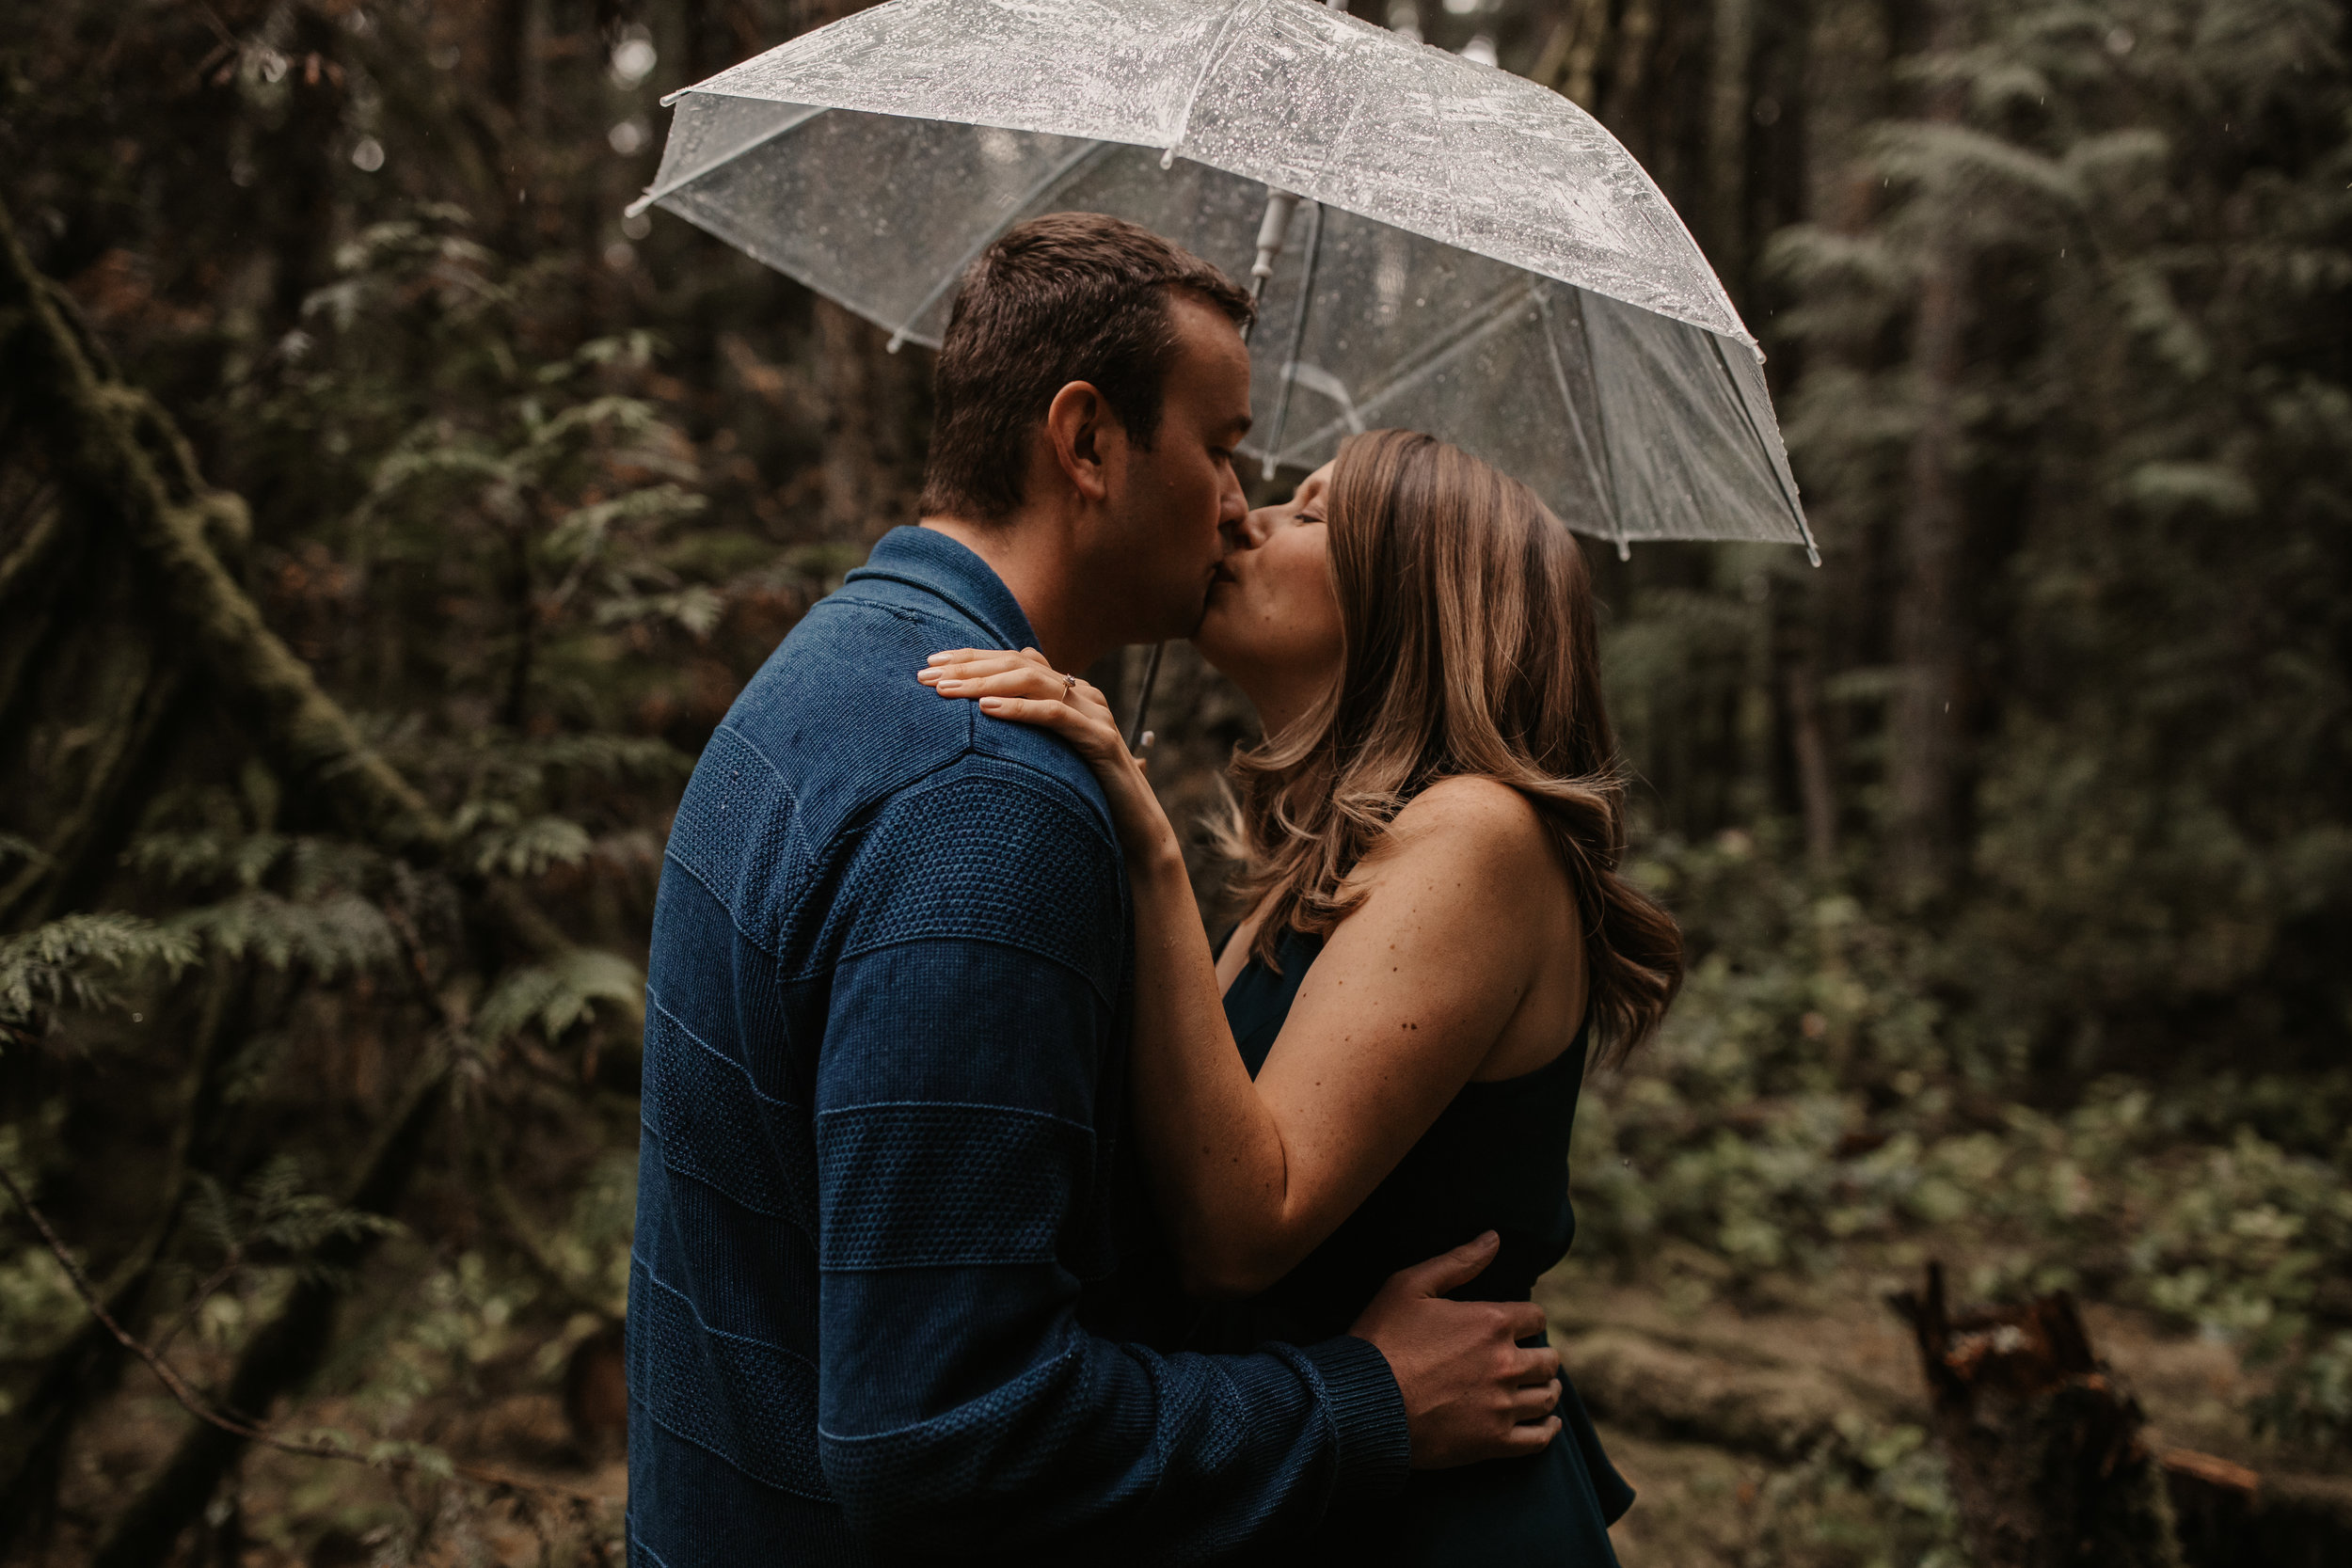 SUNSHINE COAST FOREST & BEACH ENGAGEMENT PHOTOS — Ashley & Antoine — JENNIFER PICARD PHOTOGRAPHY196.JPG